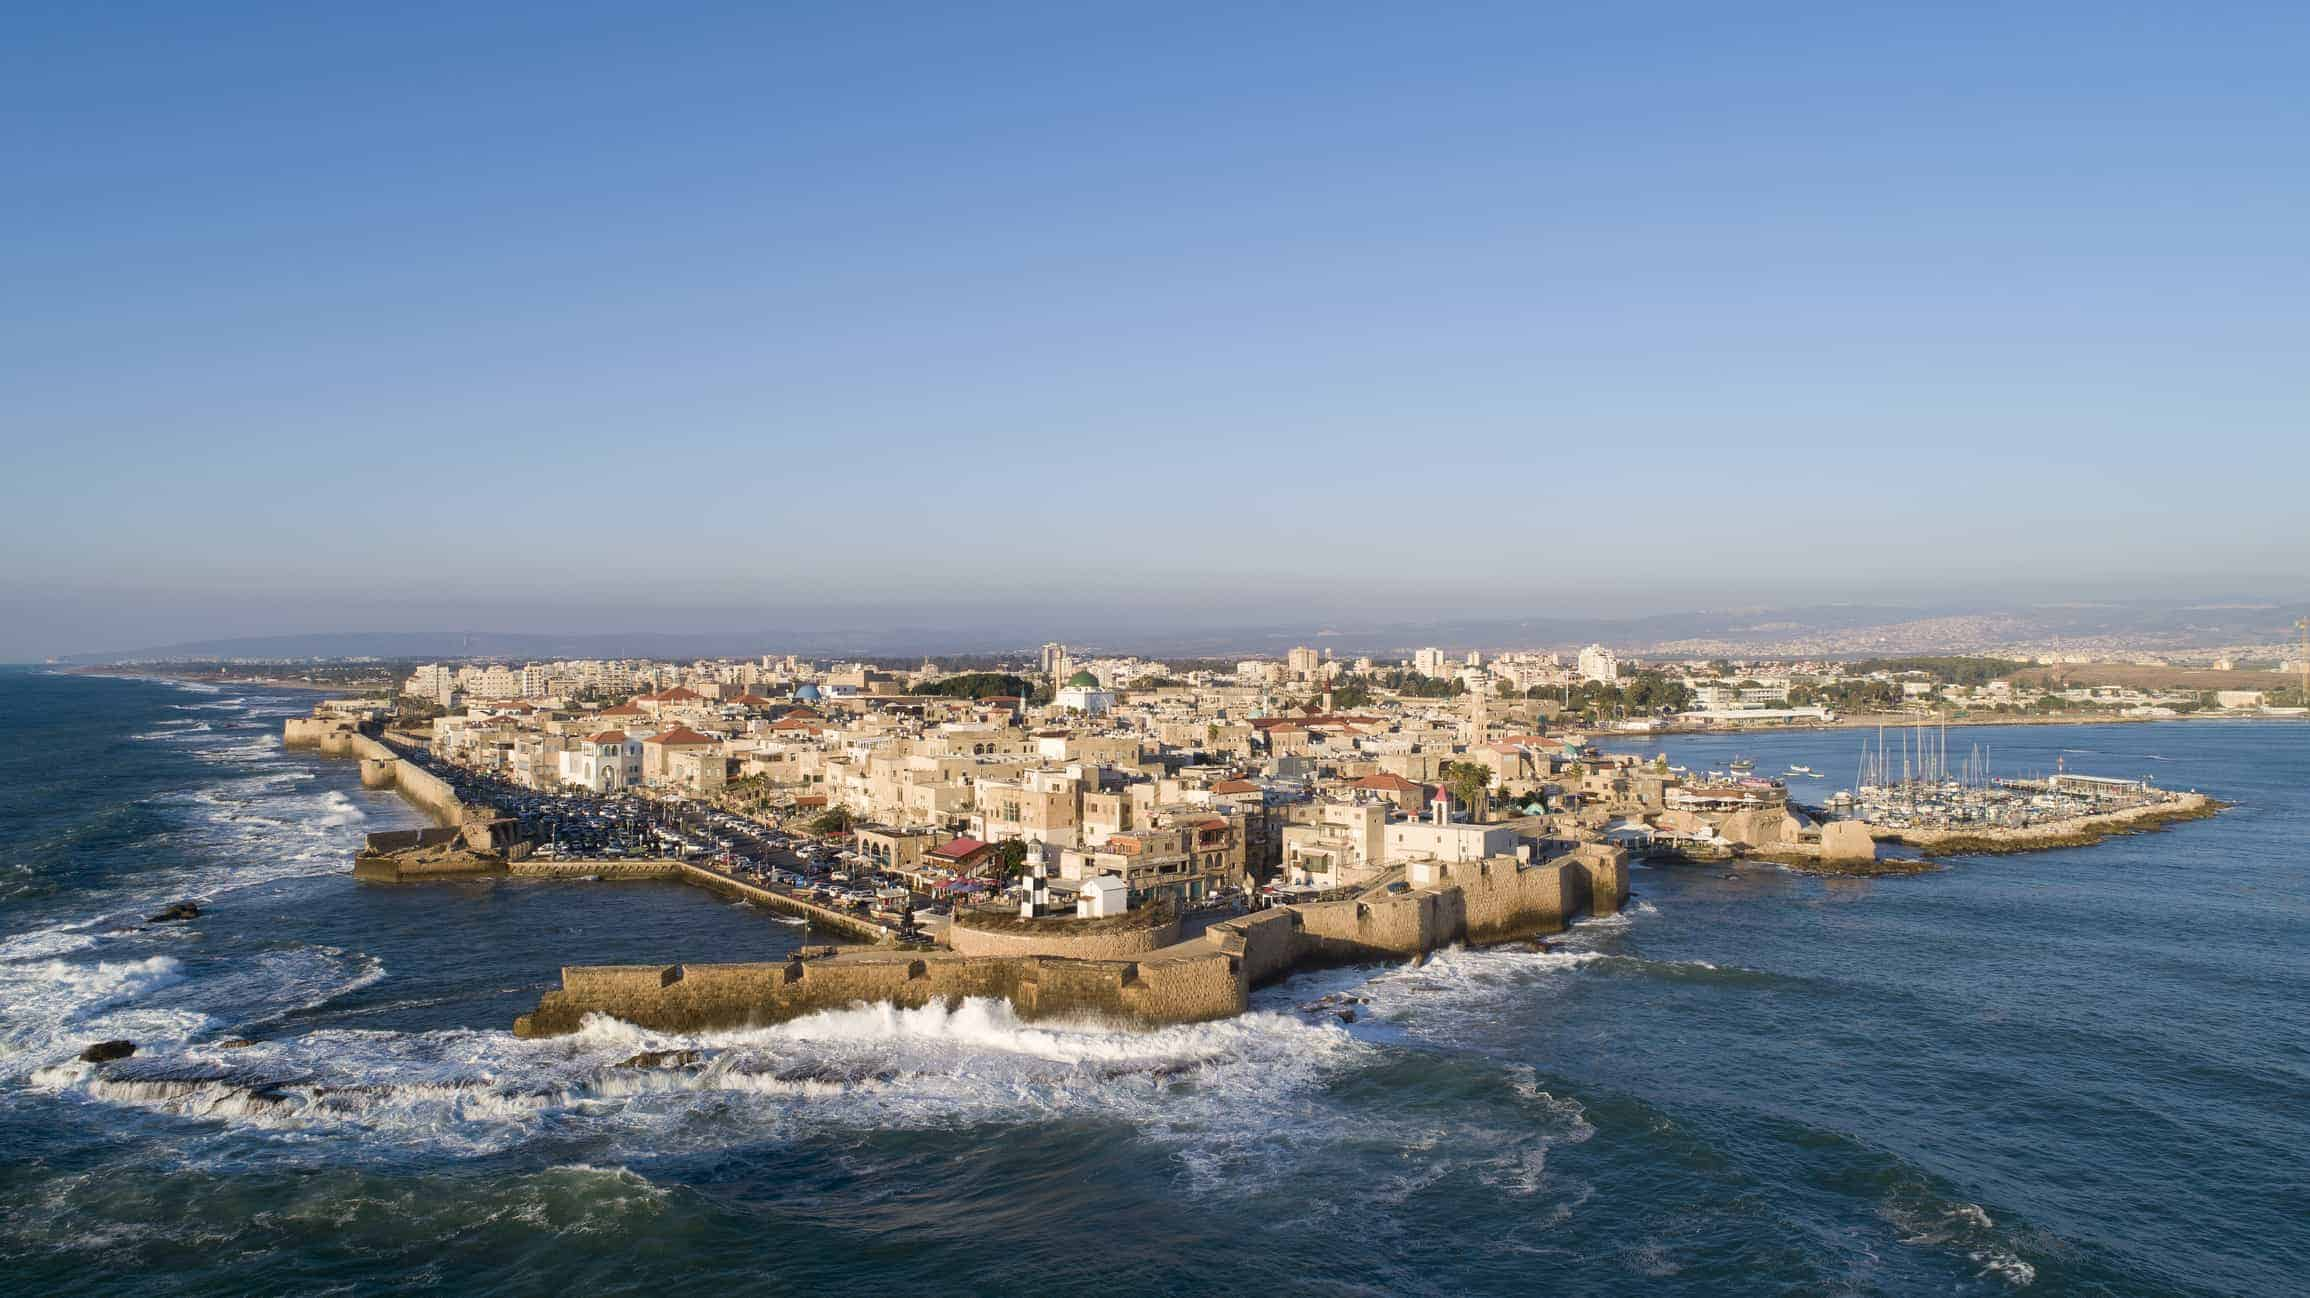 Aerial View of Acre Old City 2